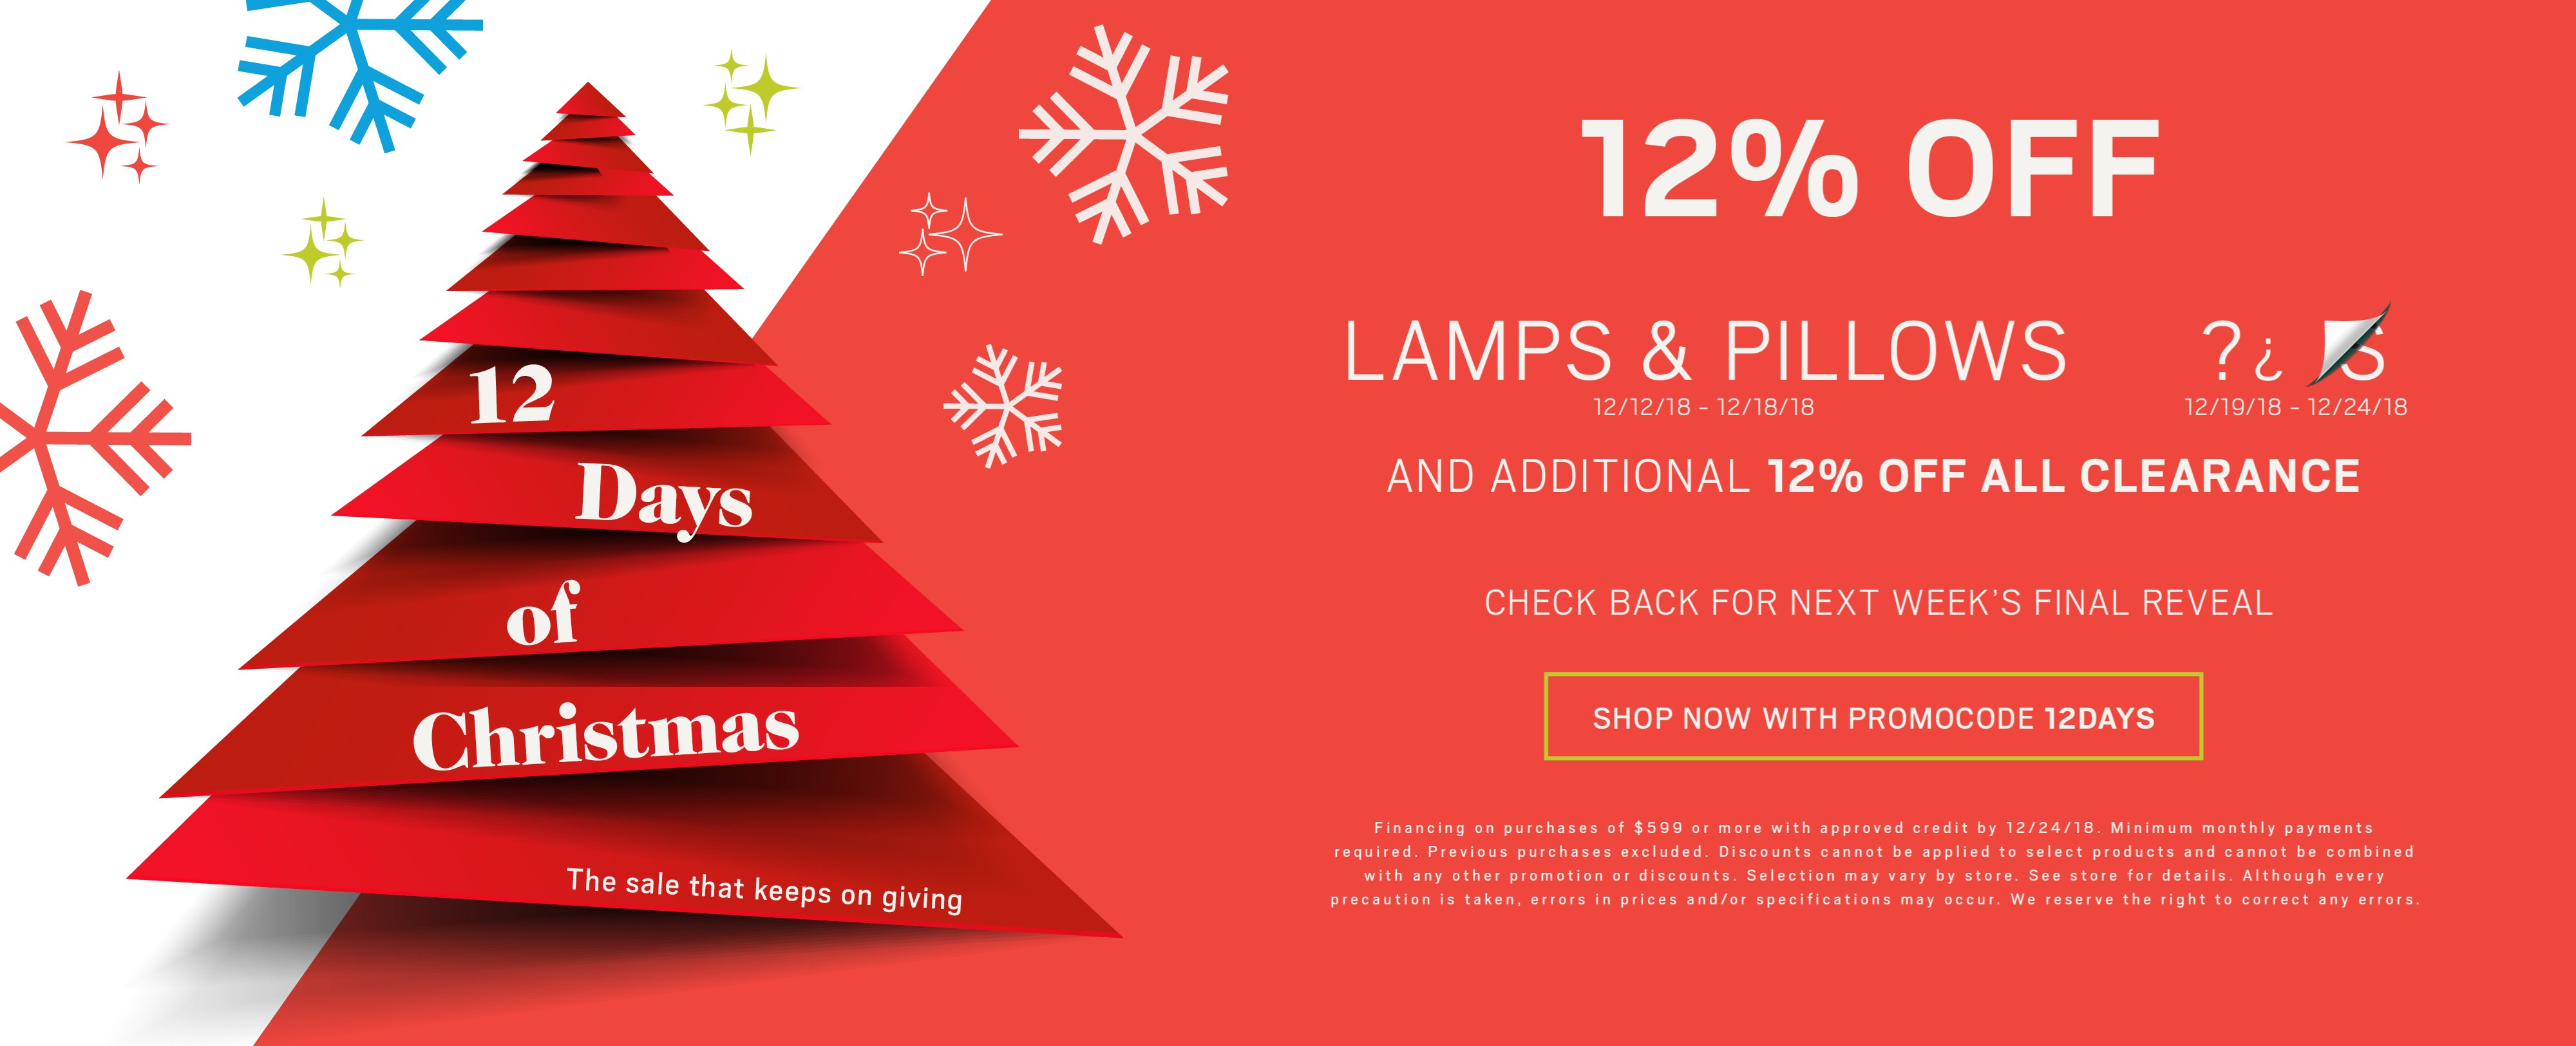 12% off lamps & pillows; see store for details.